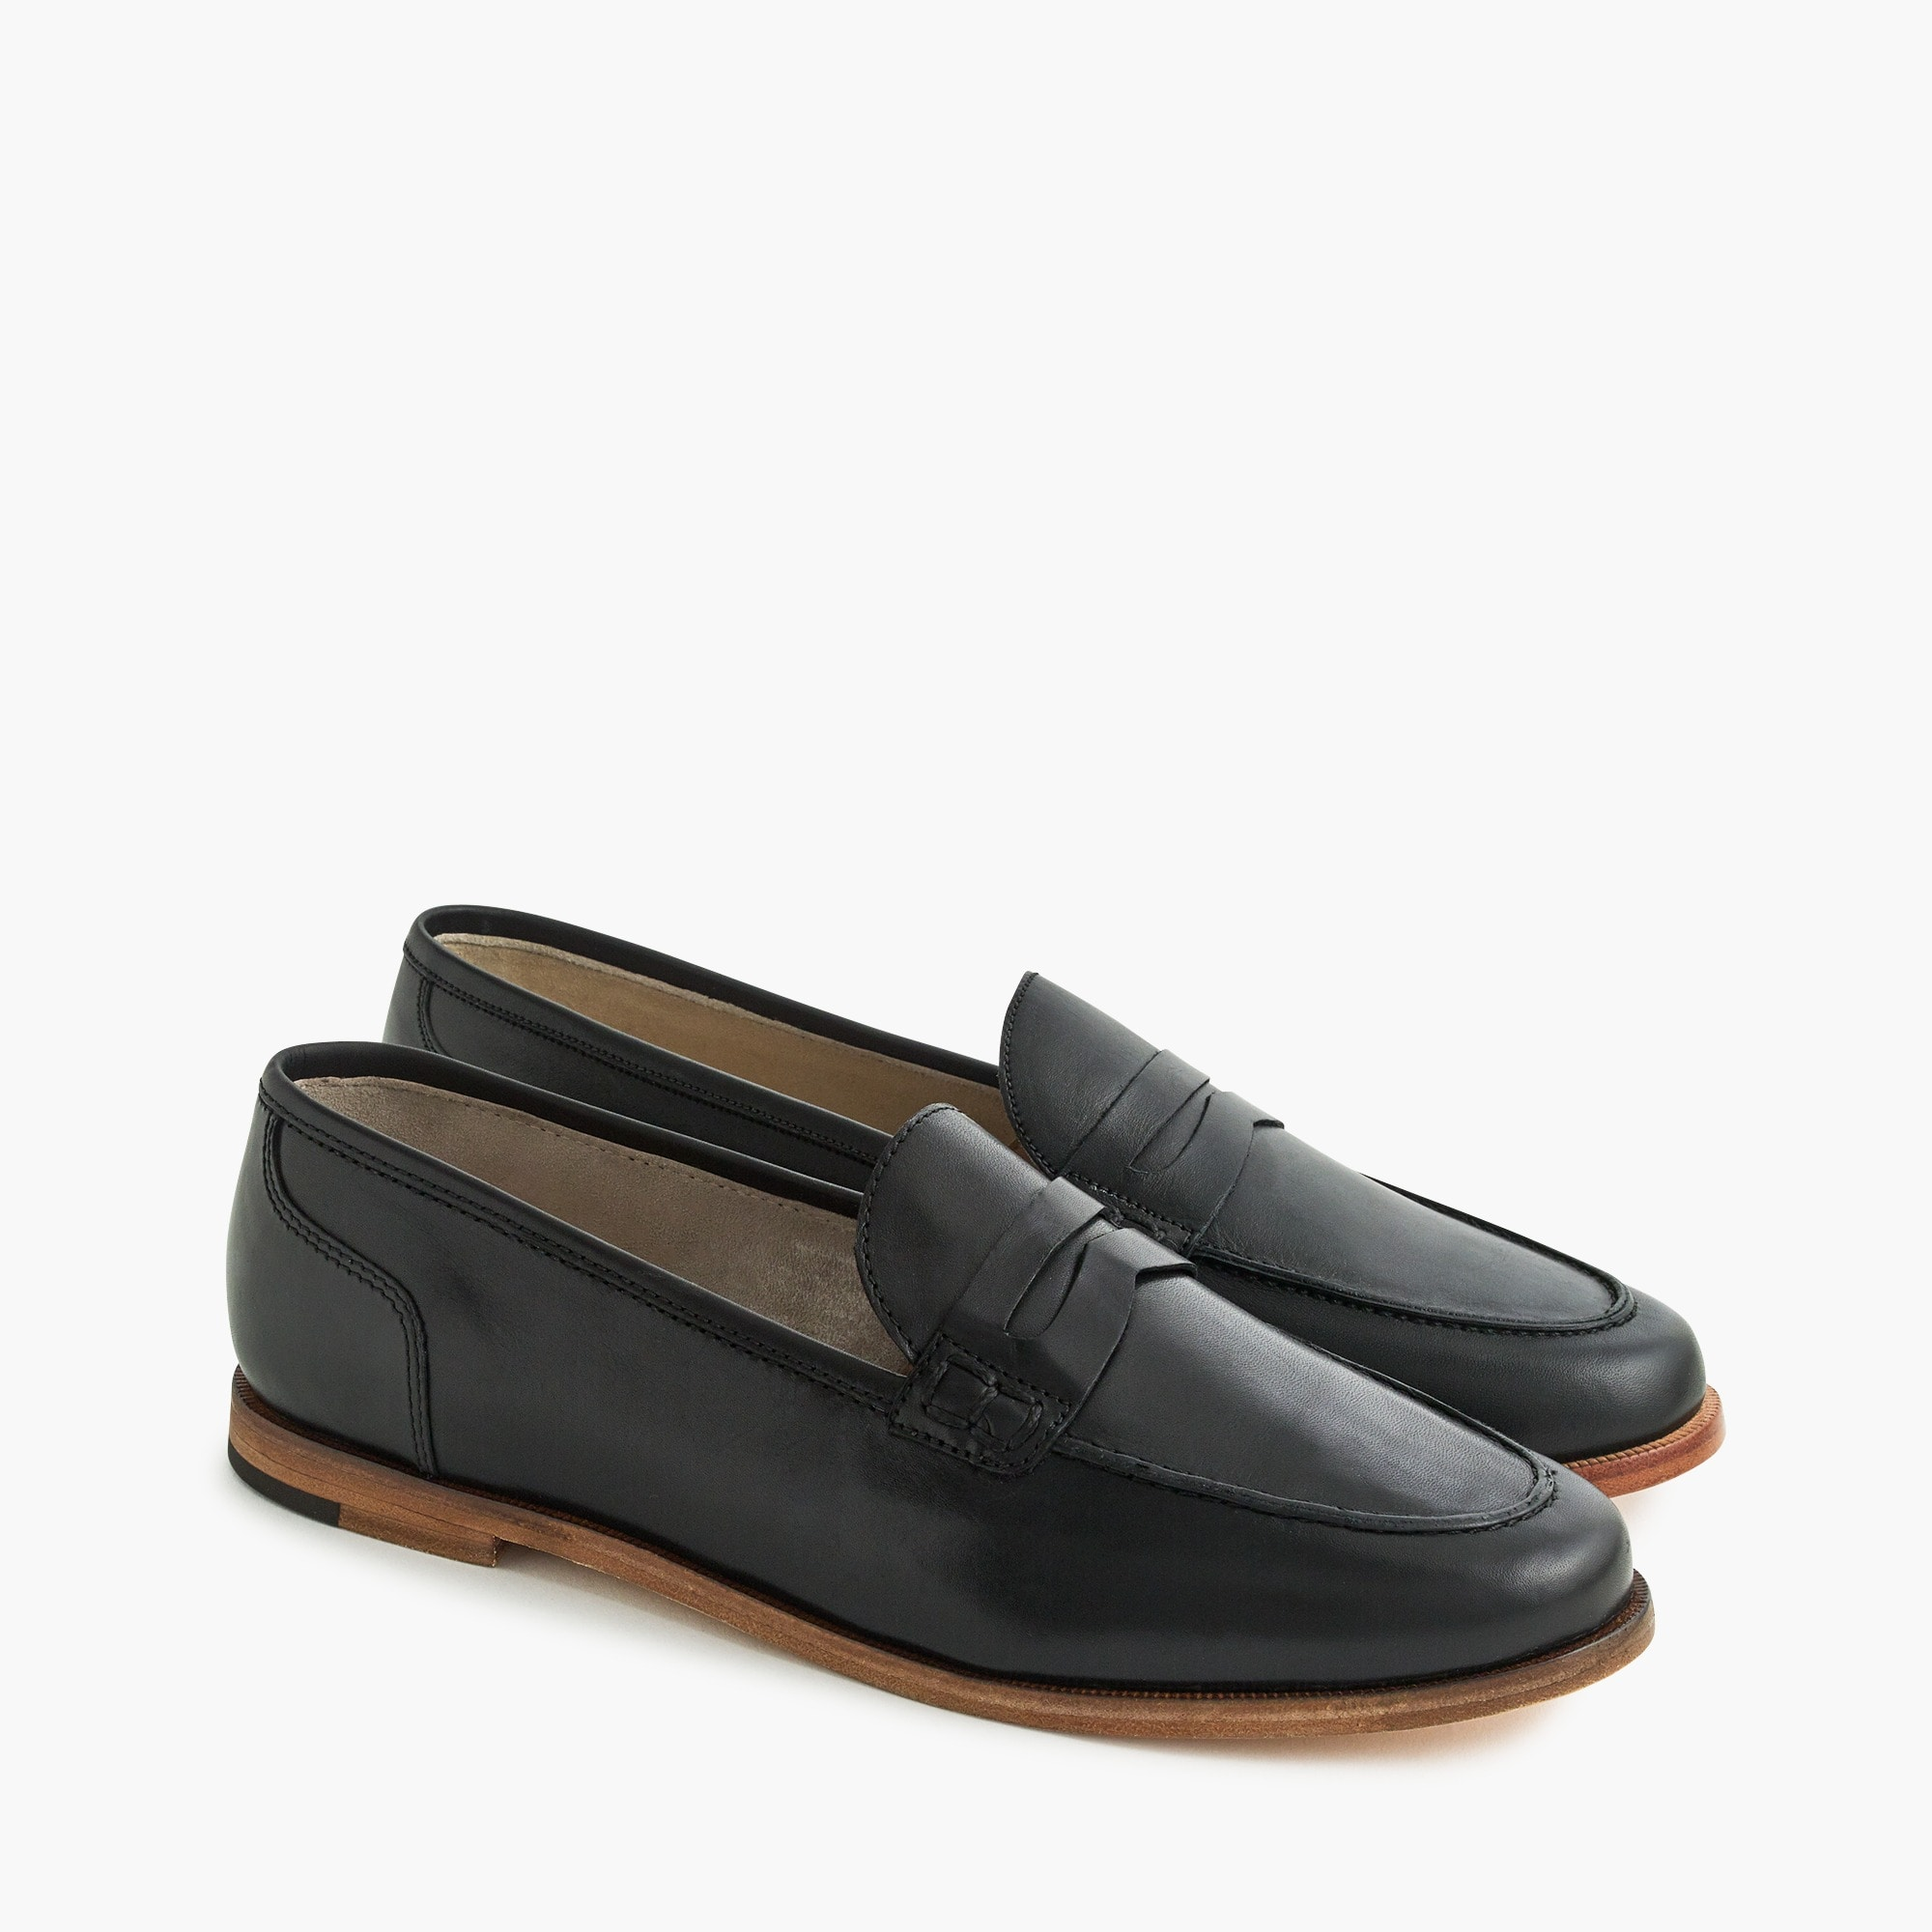 Image 4 for Ryan penny loafers in leather